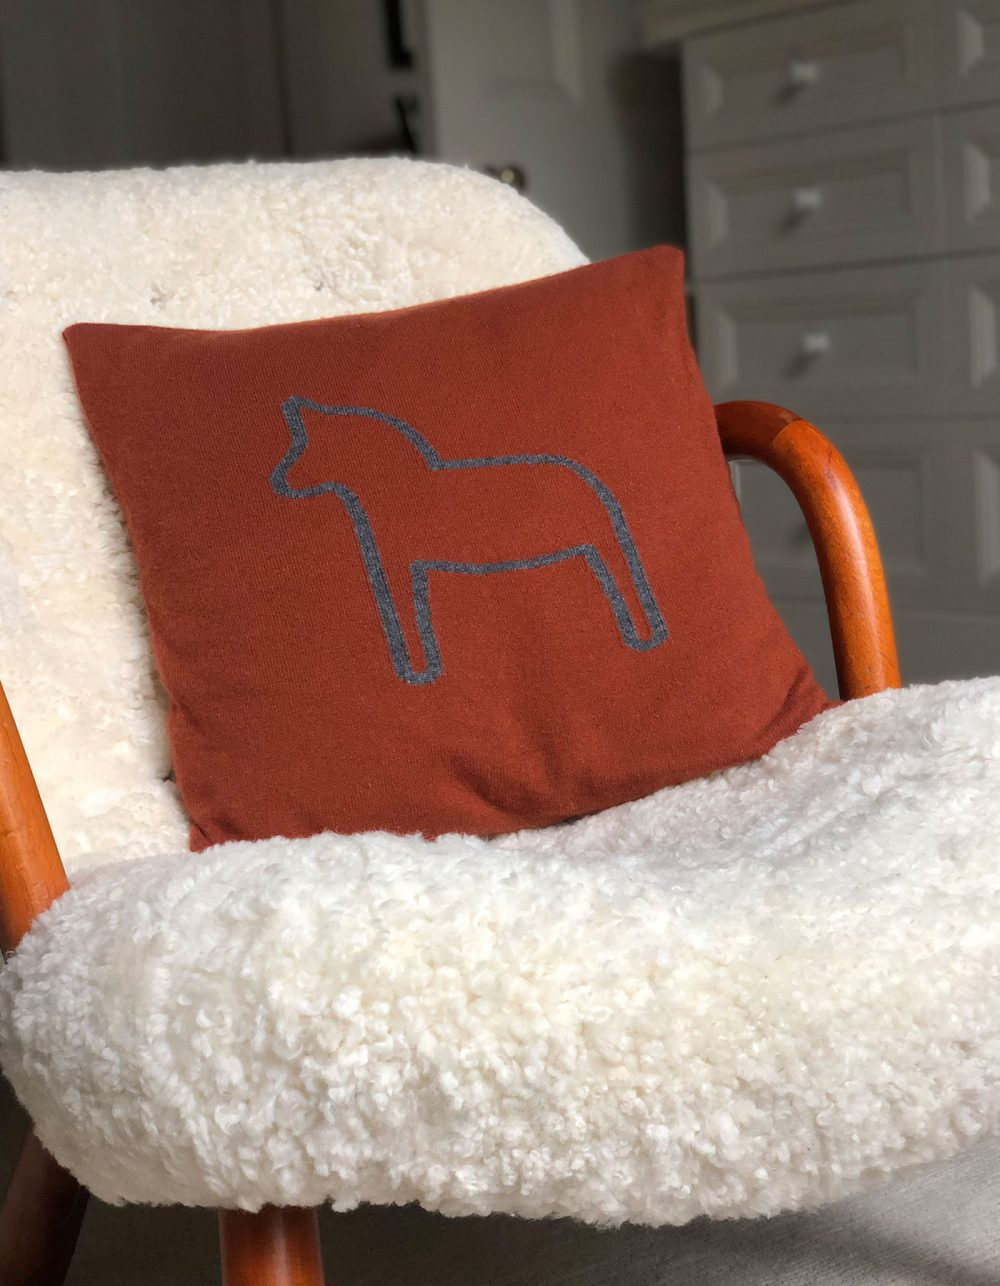 Image of a rust coloured designer cashmere cushion cover, part of the malin darlin range of cashmere gifts.